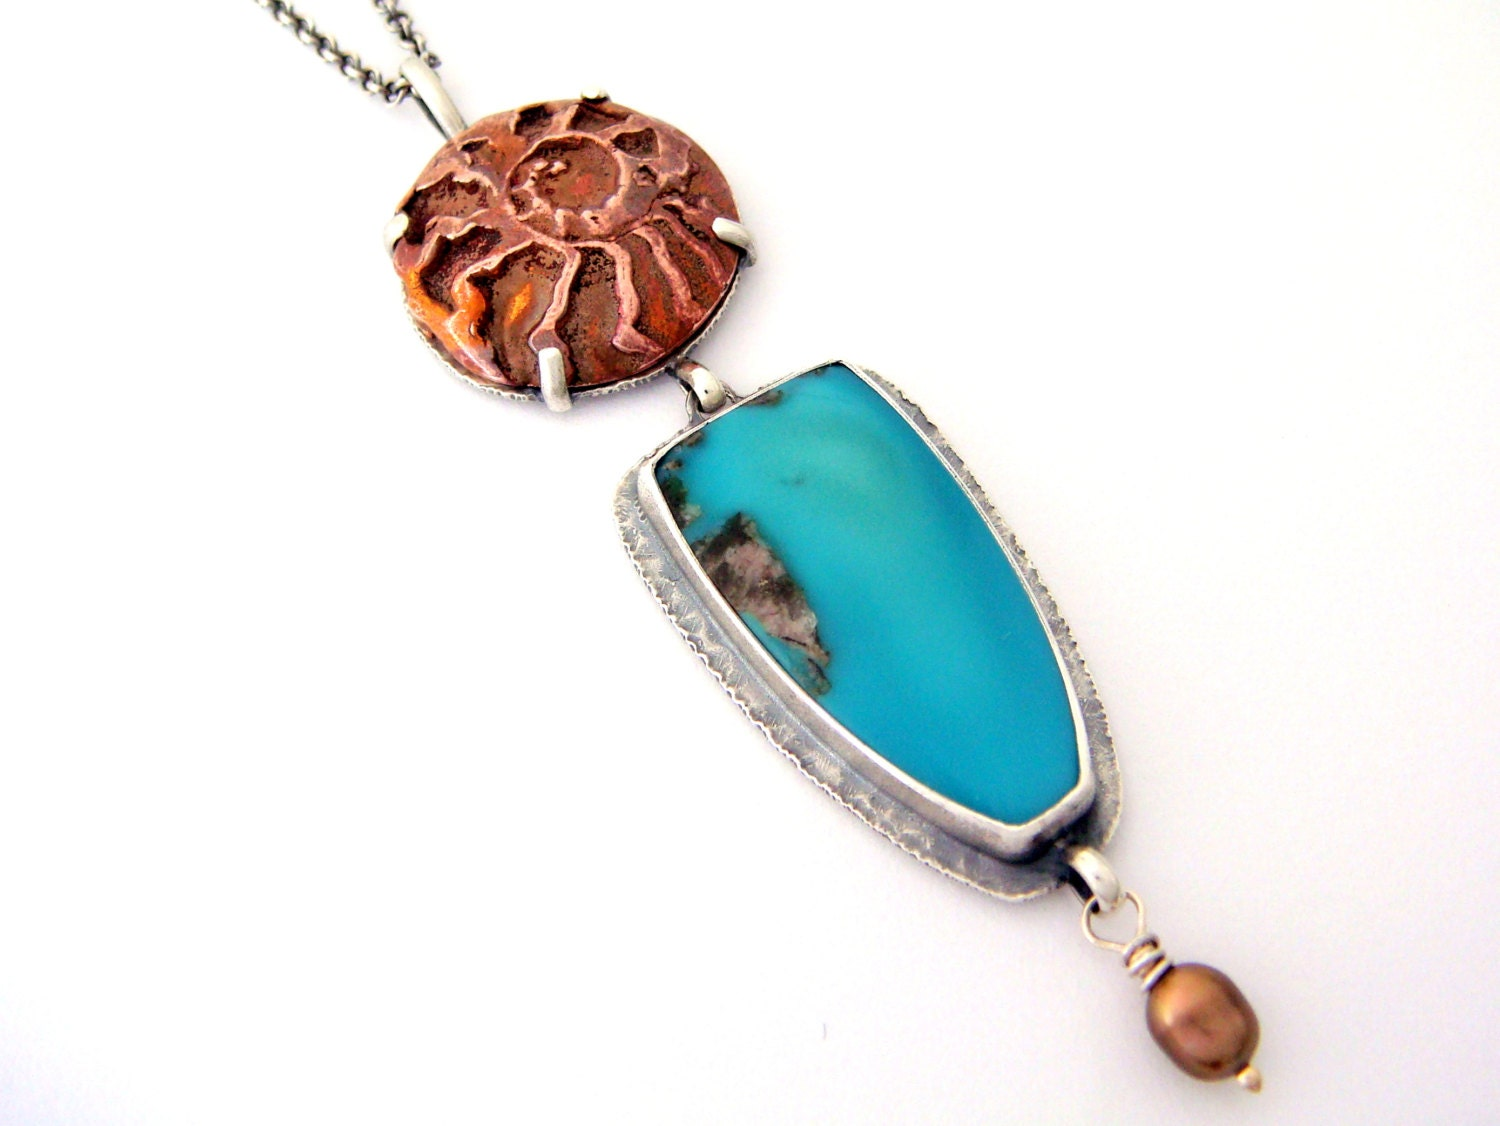 Beach Combing - Turquoise Necklace with Copper Ammonite and Pearl set in Sterling Silver - Carlin Mine Turquoise Necklace - SCJJewelryDesign